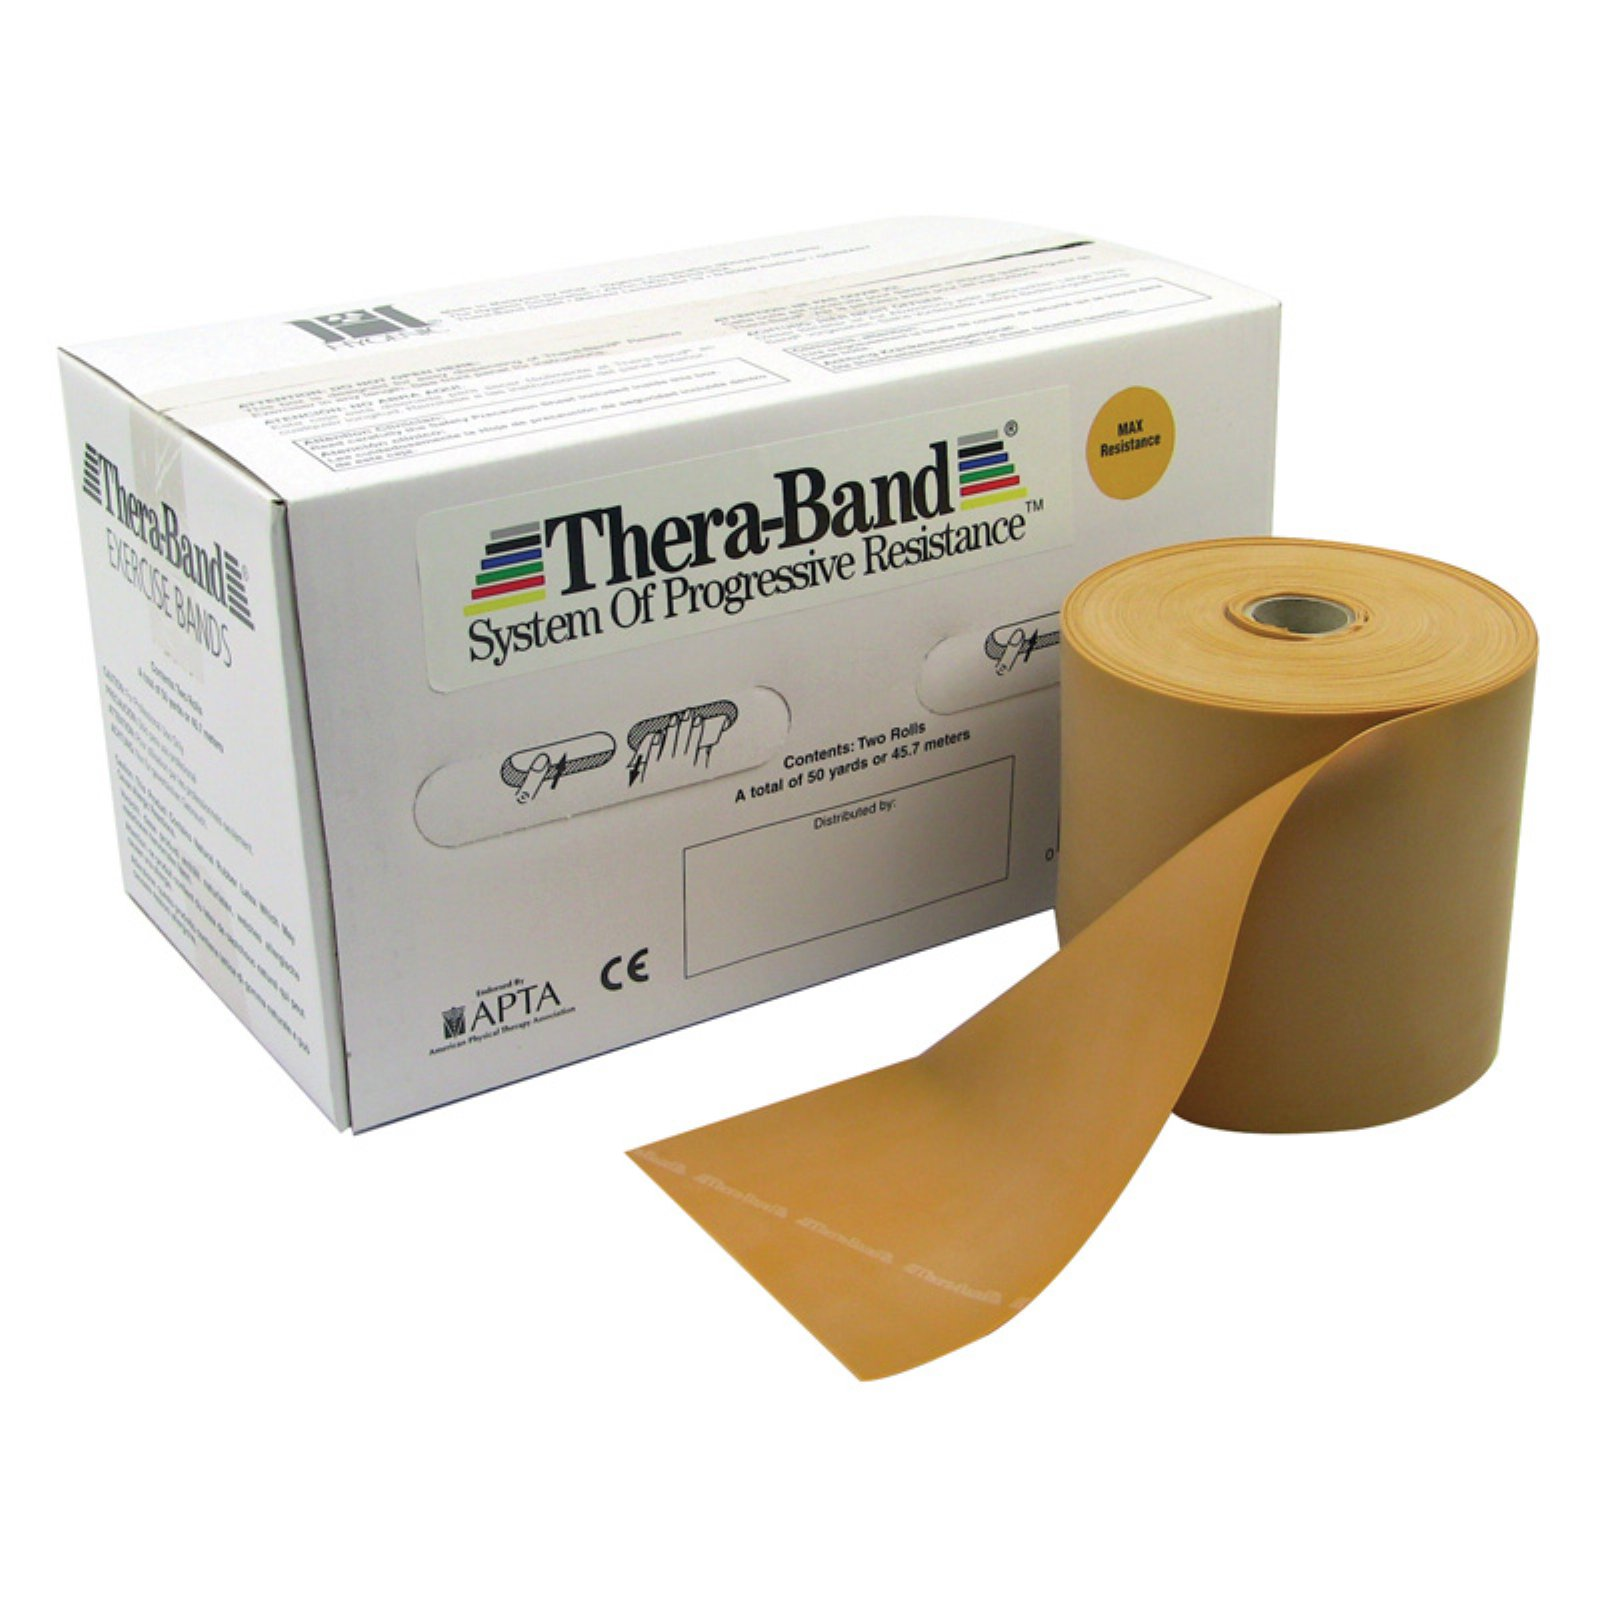 TheraBand Twin-Pak exercise band, gold, 100 yard (4 25-yd boxes)